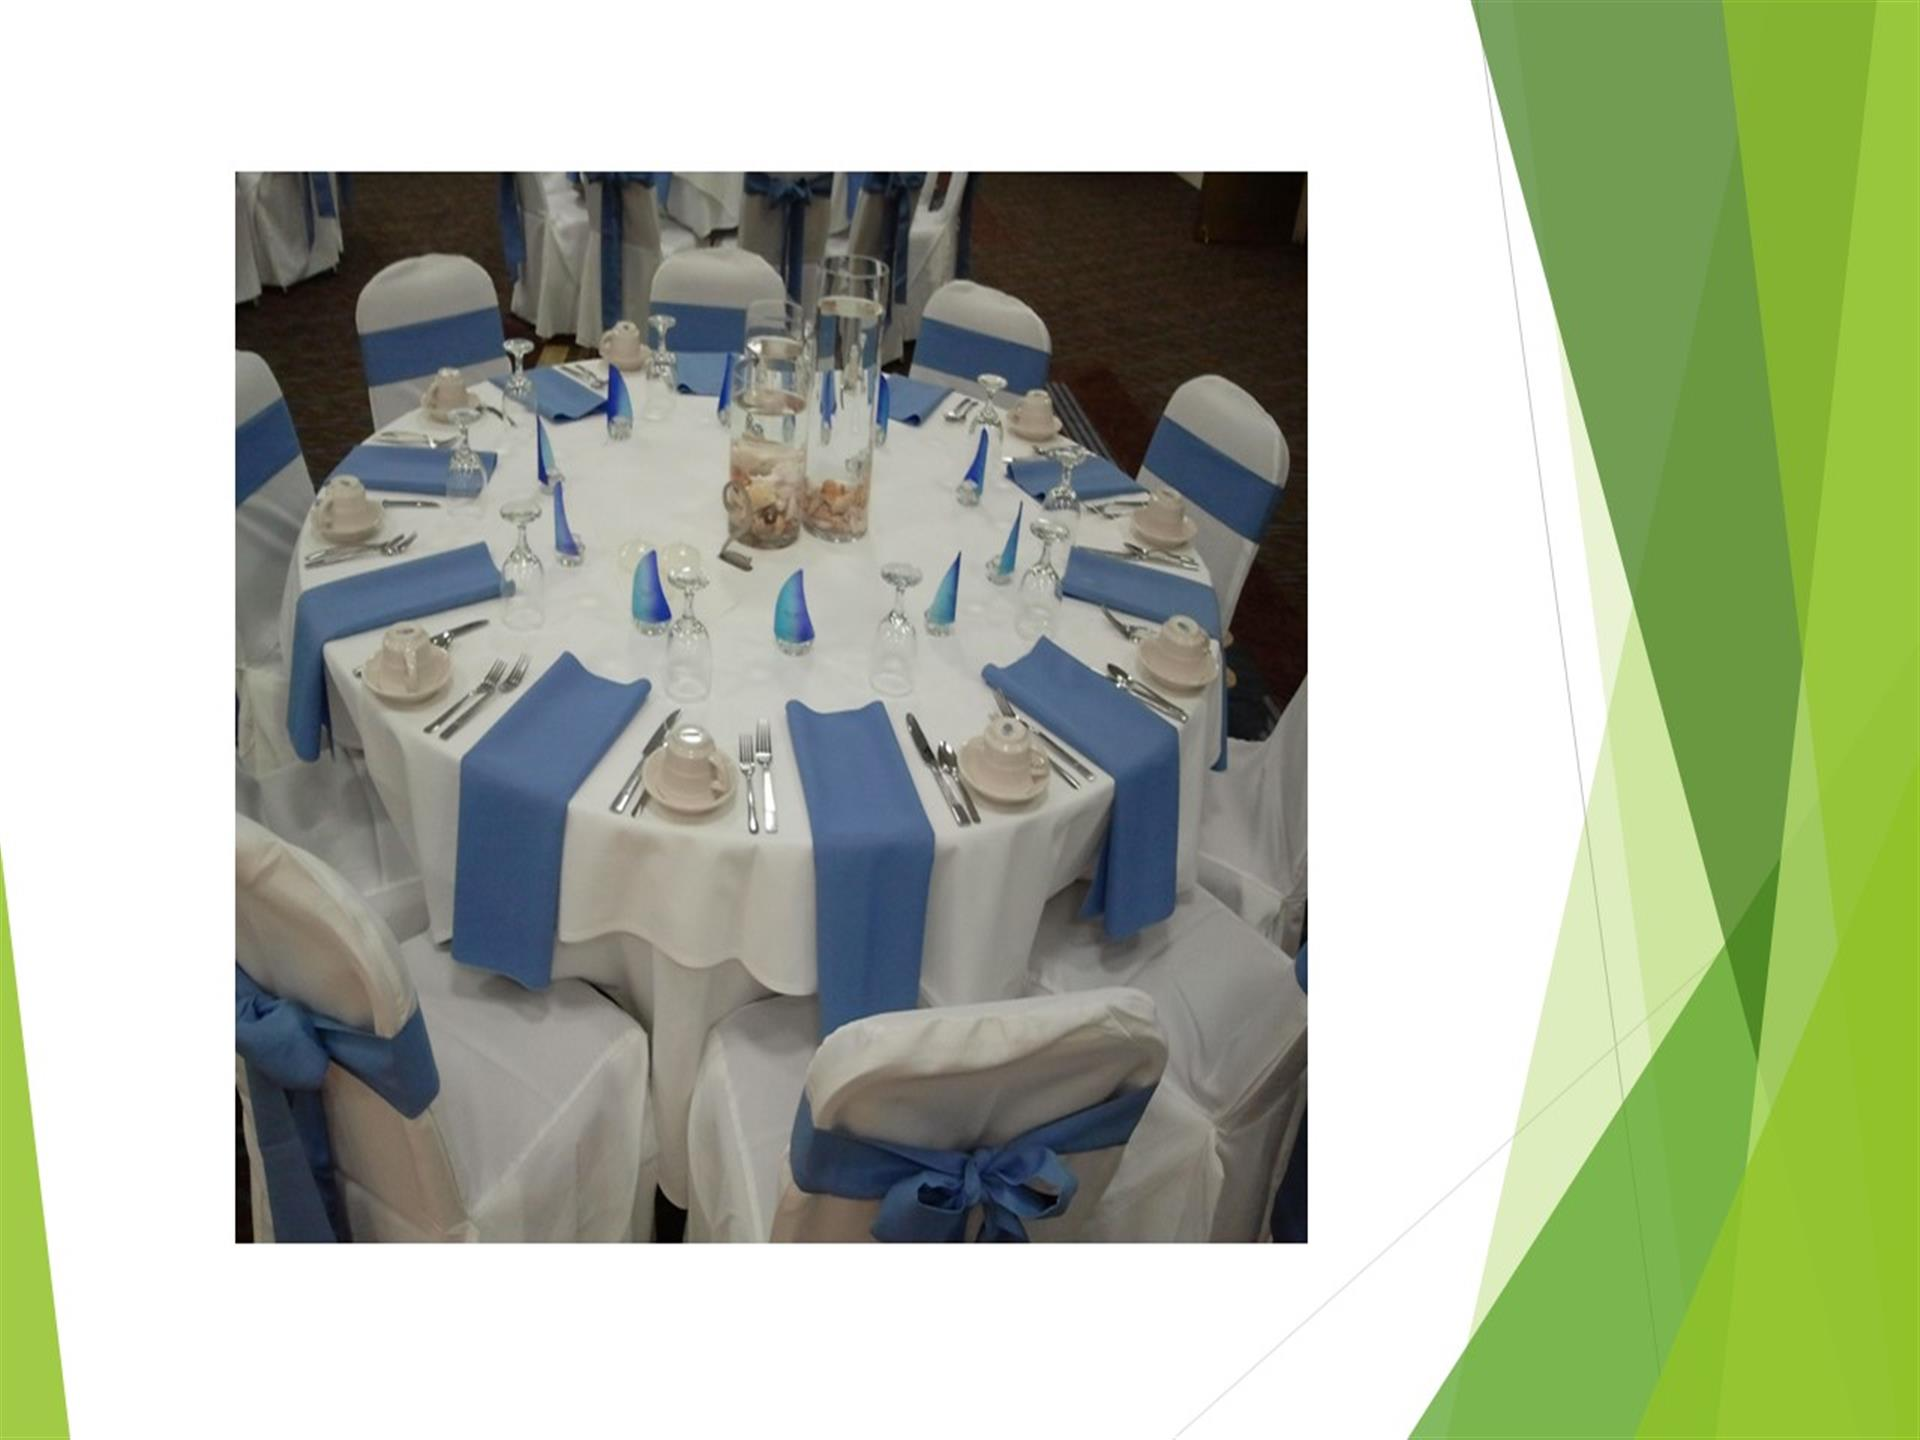 White tablecloth placesetting with blue napkins. White chairs adorned with blue ribbon.